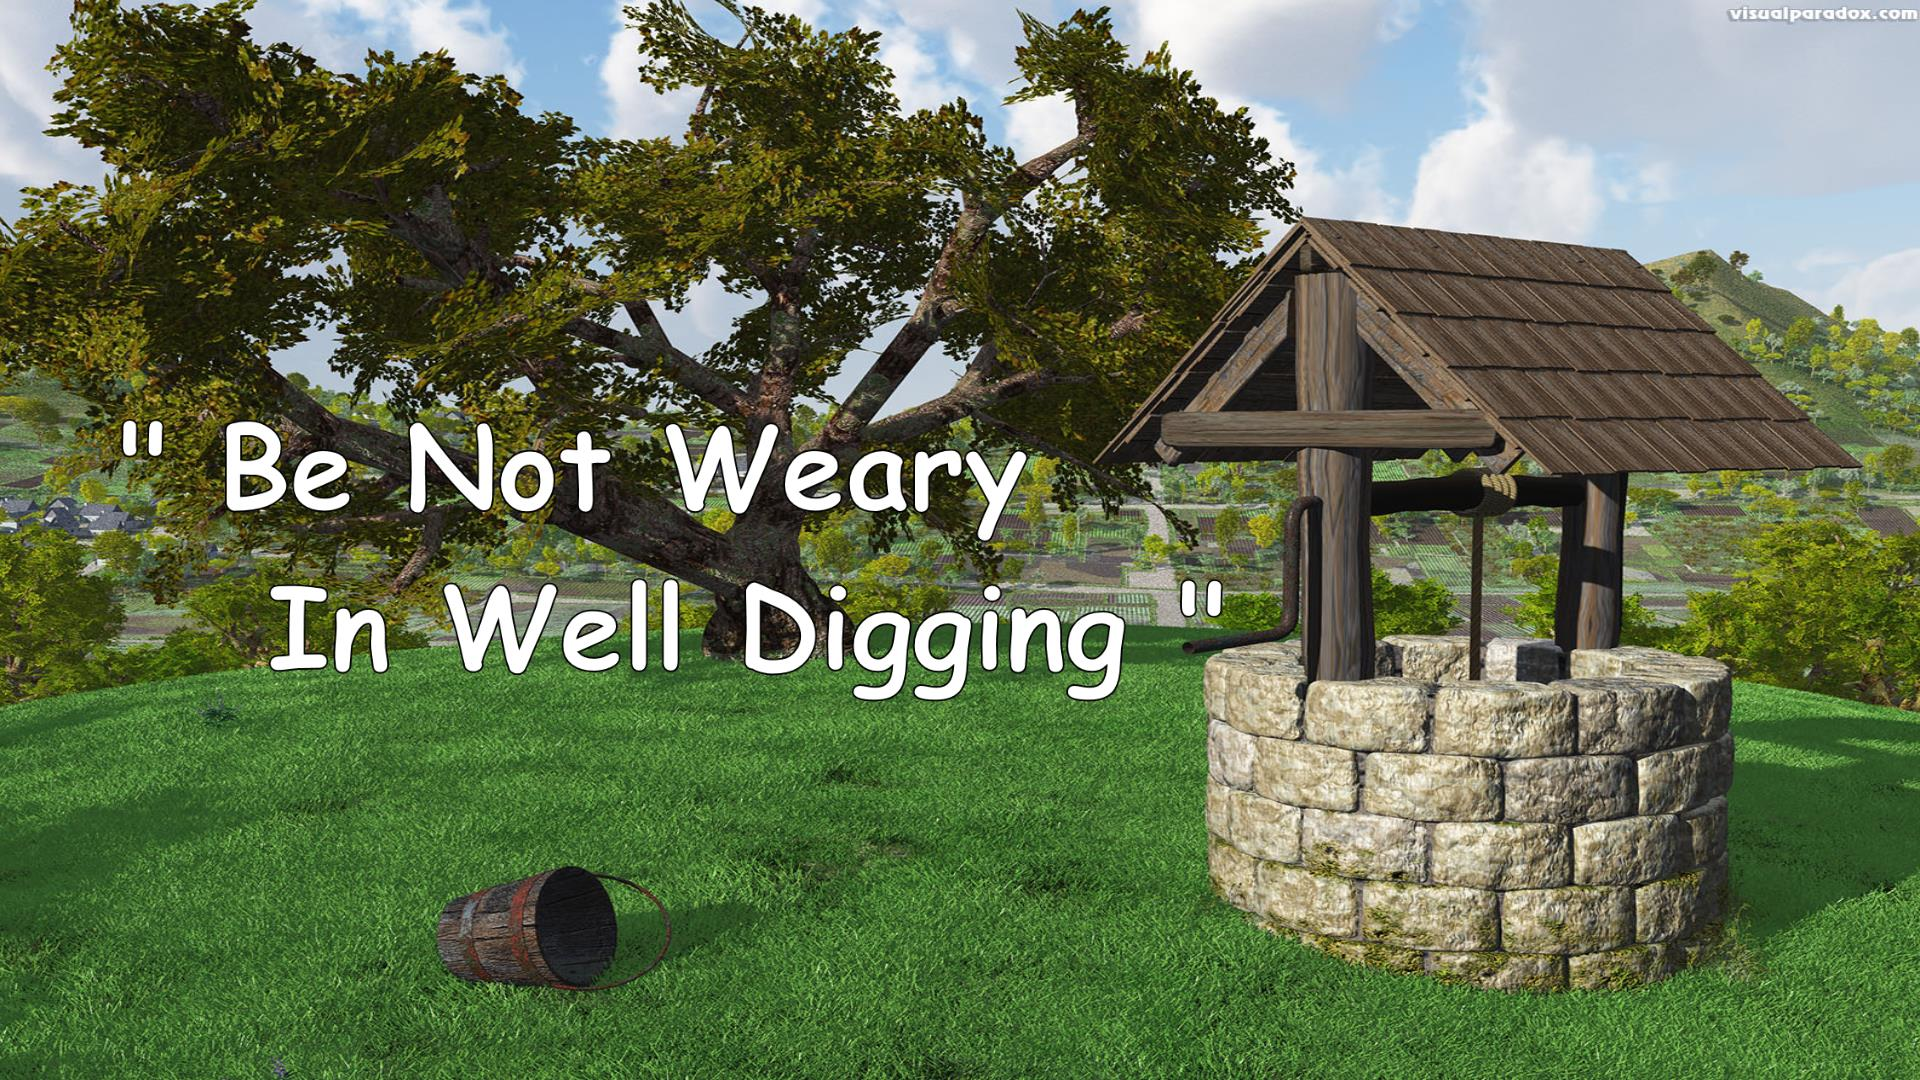 Be Not Weary in Well Digging